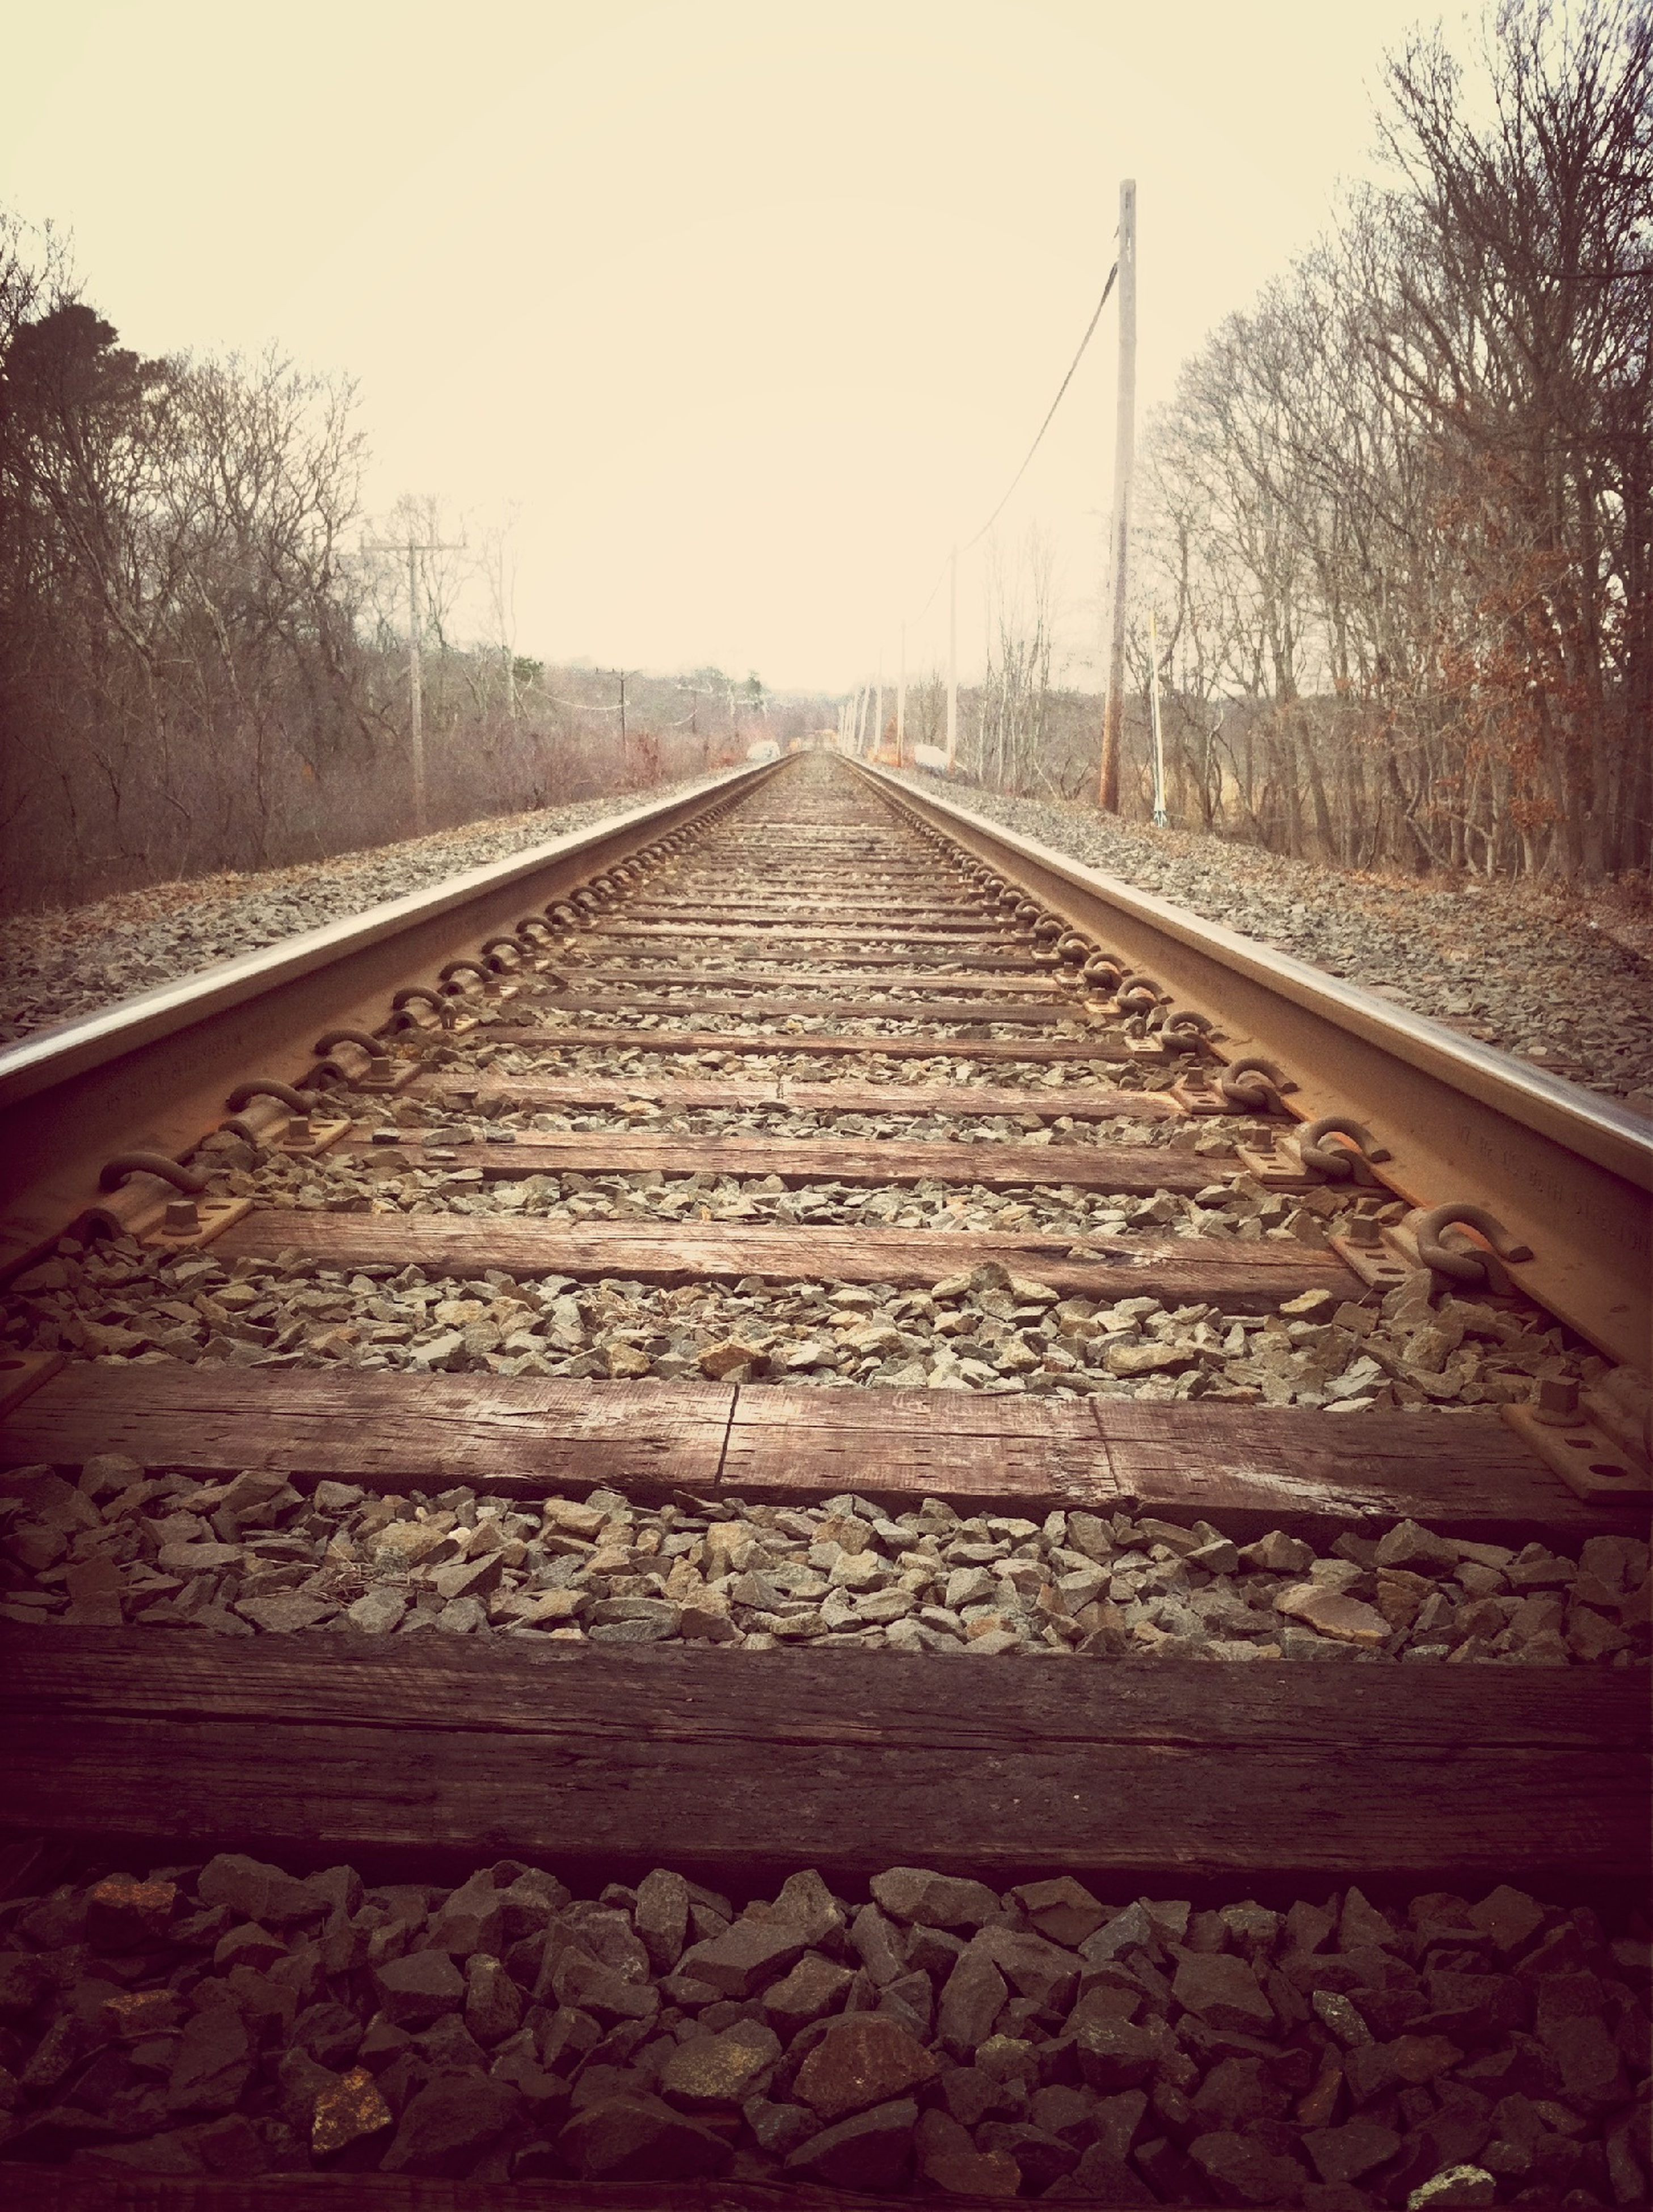 the way forward, railroad track, diminishing perspective, transportation, vanishing point, clear sky, rail transportation, tree, sky, long, surface level, straight, connection, railway track, tranquility, outdoors, day, no people, metal, nature